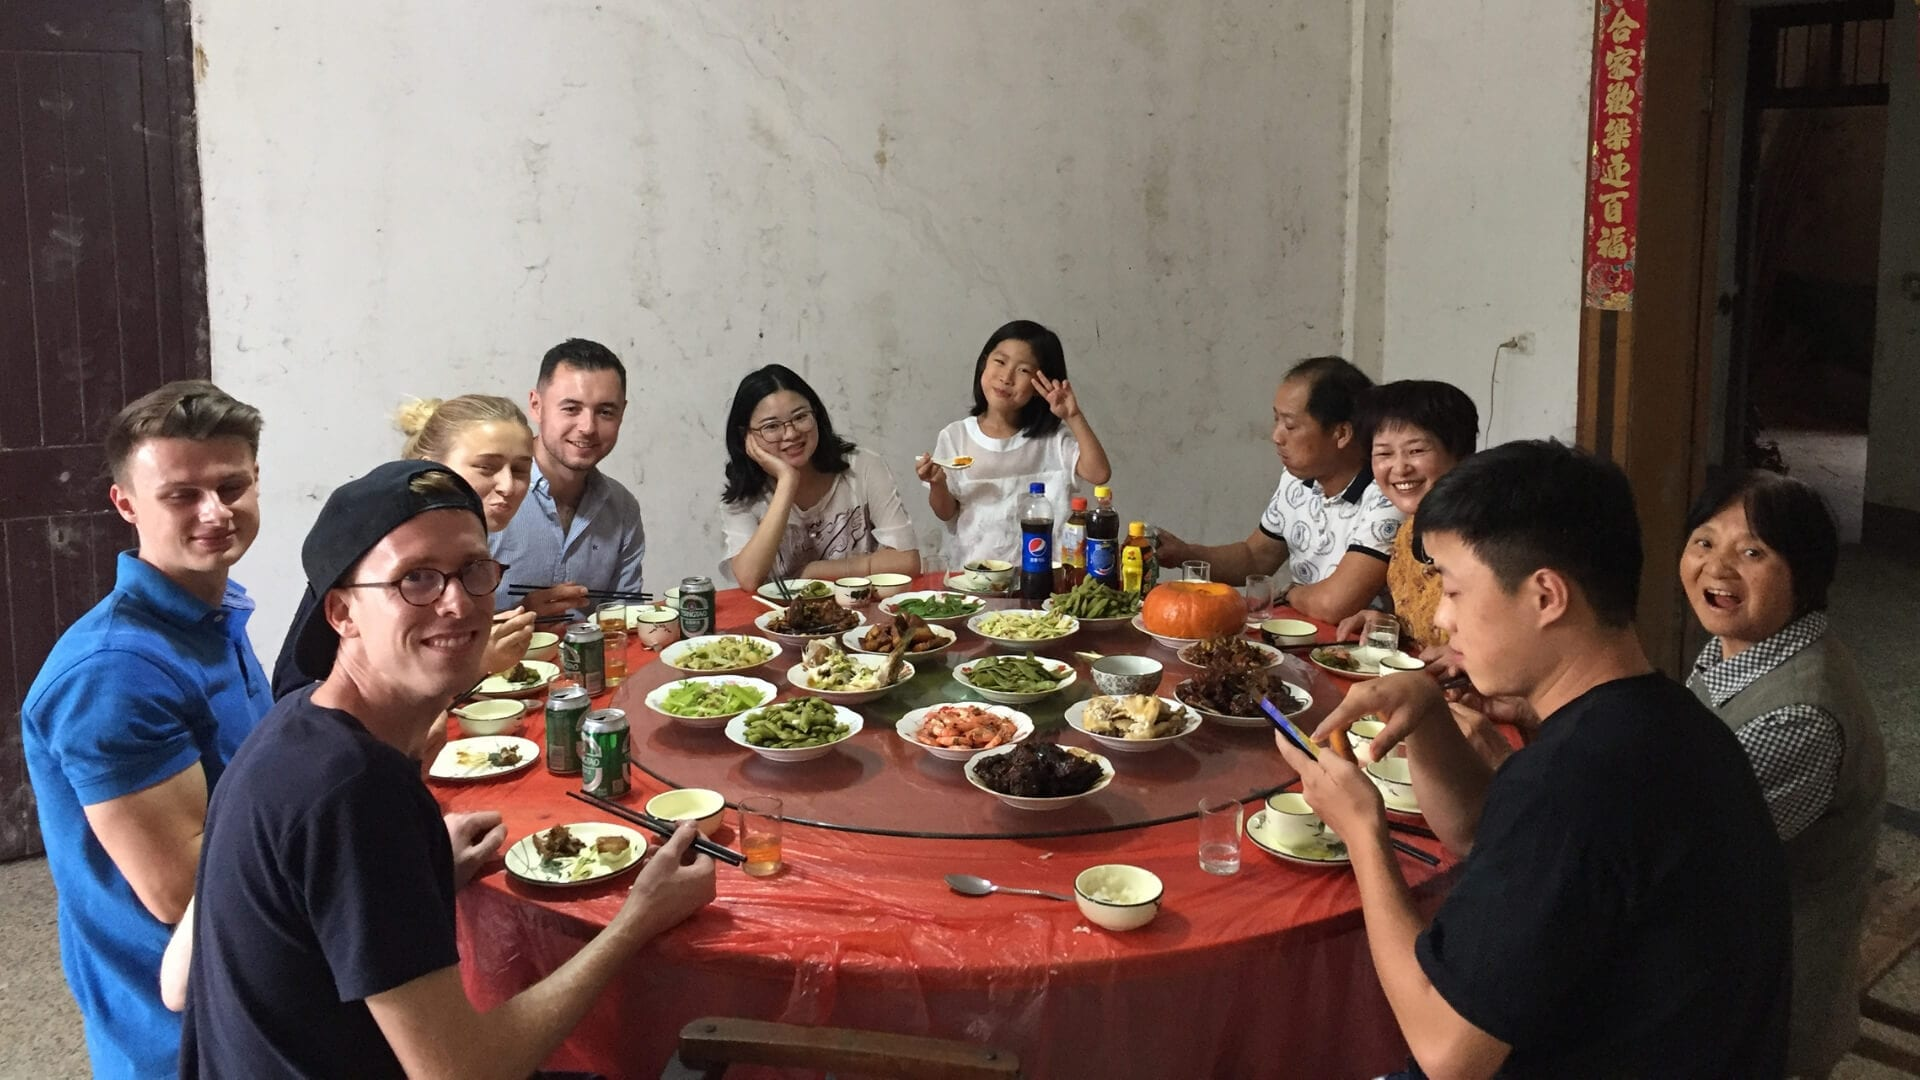 People are eating Chinese food on a round table in Shanghai.